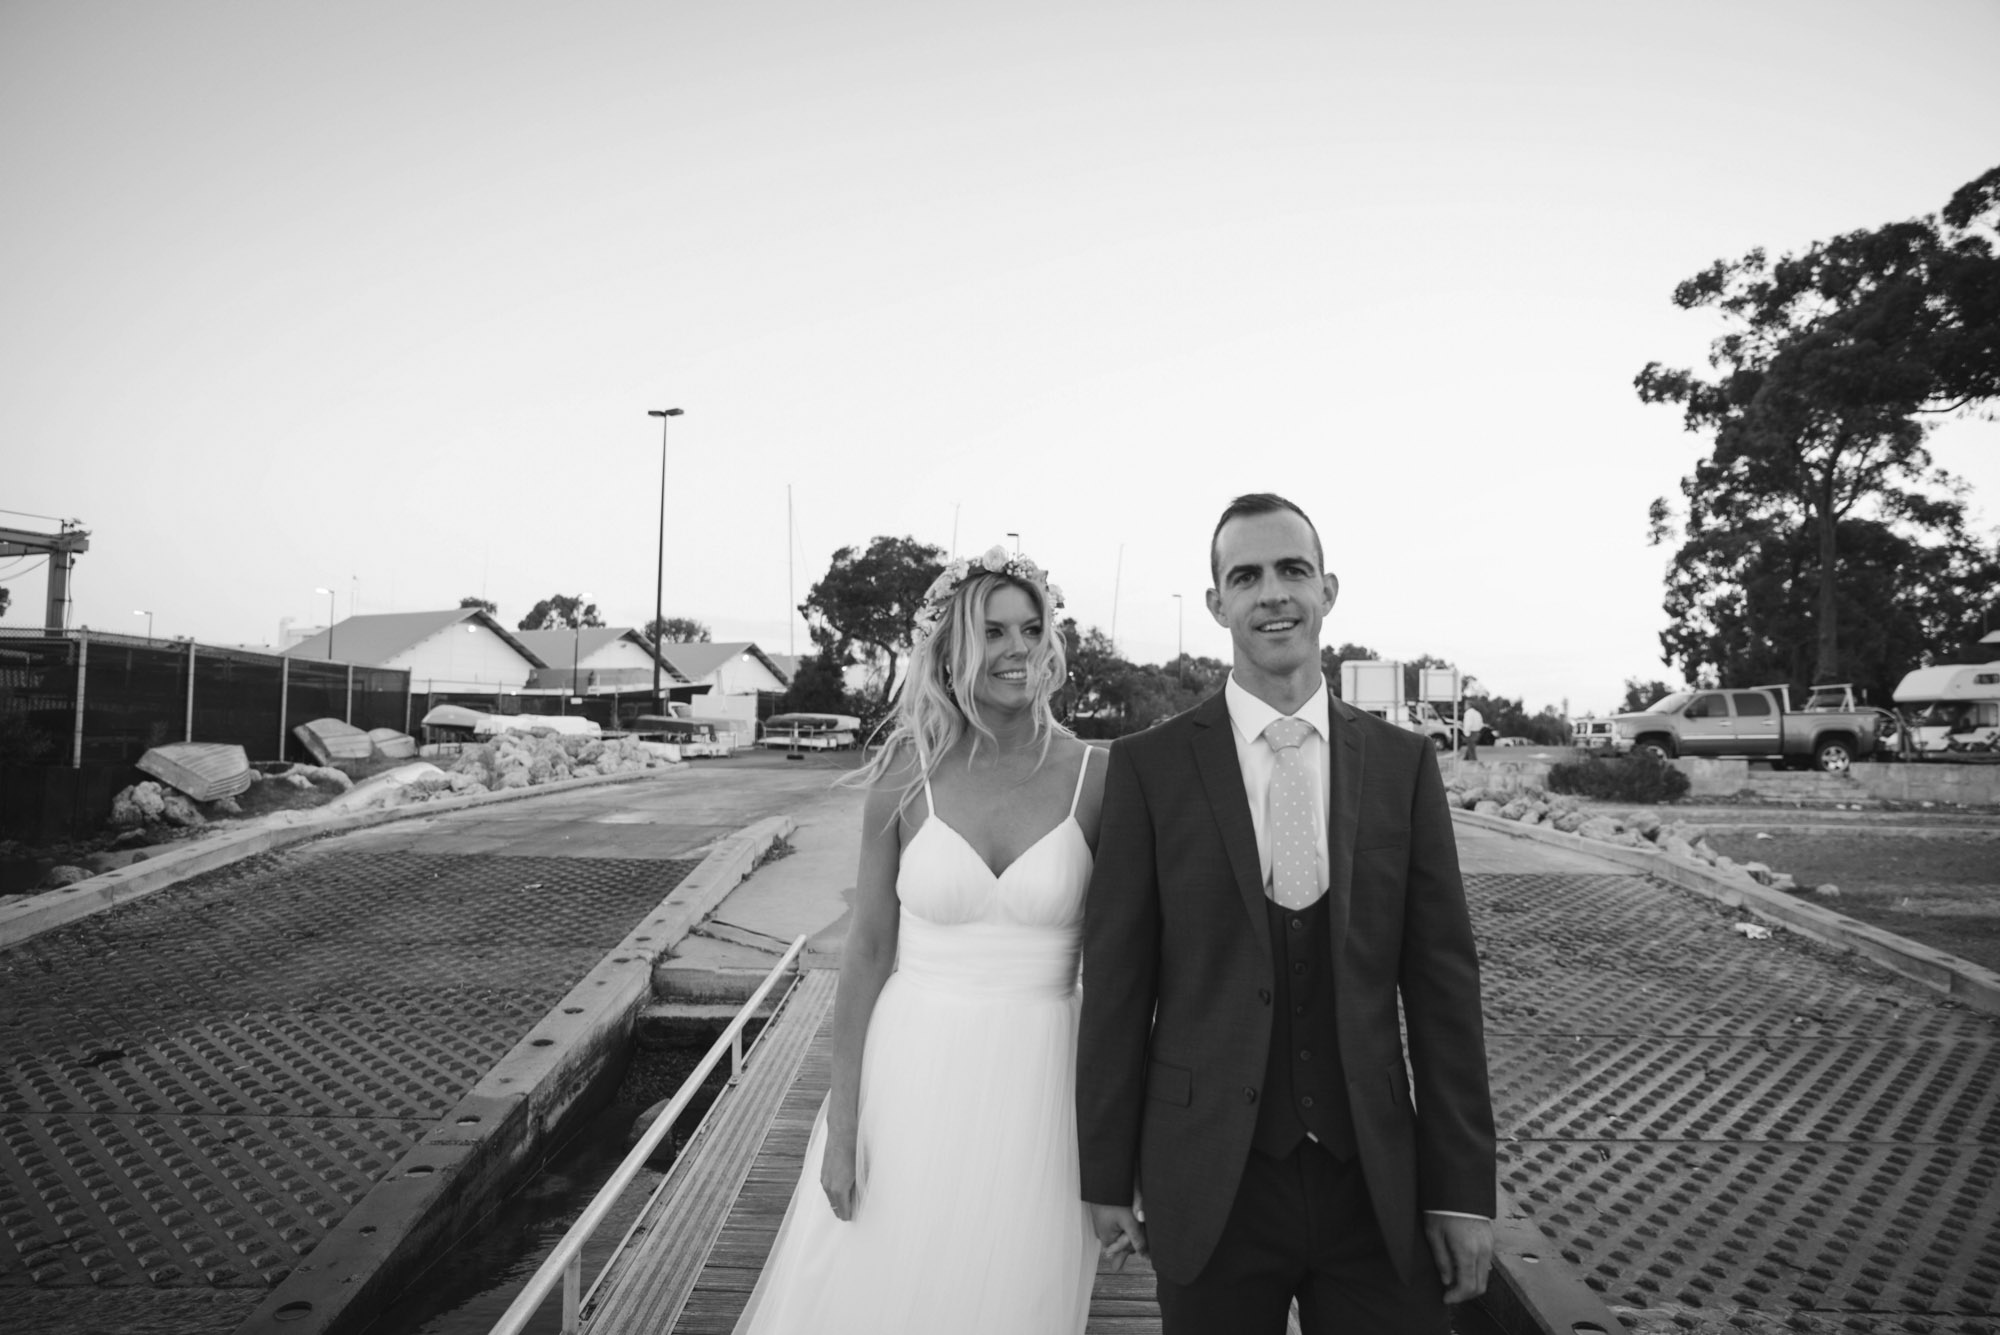 Angie-Roe-Photography-Wedding-Perth-Northam-Wheatbelt-Country-Rural (29).jpg